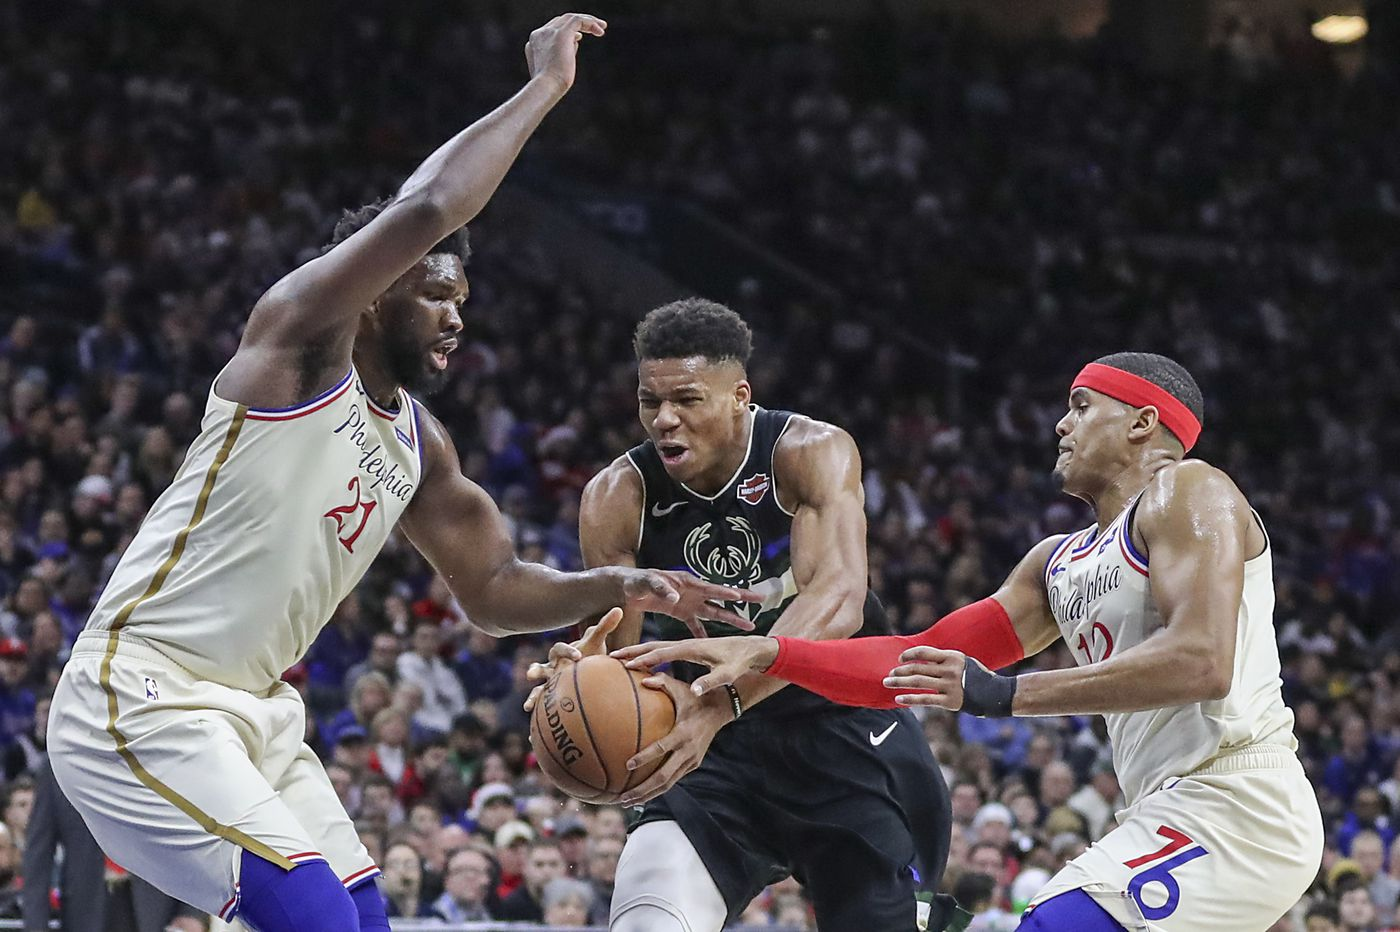 Sixers' NBA title odds generously holding at 25-1